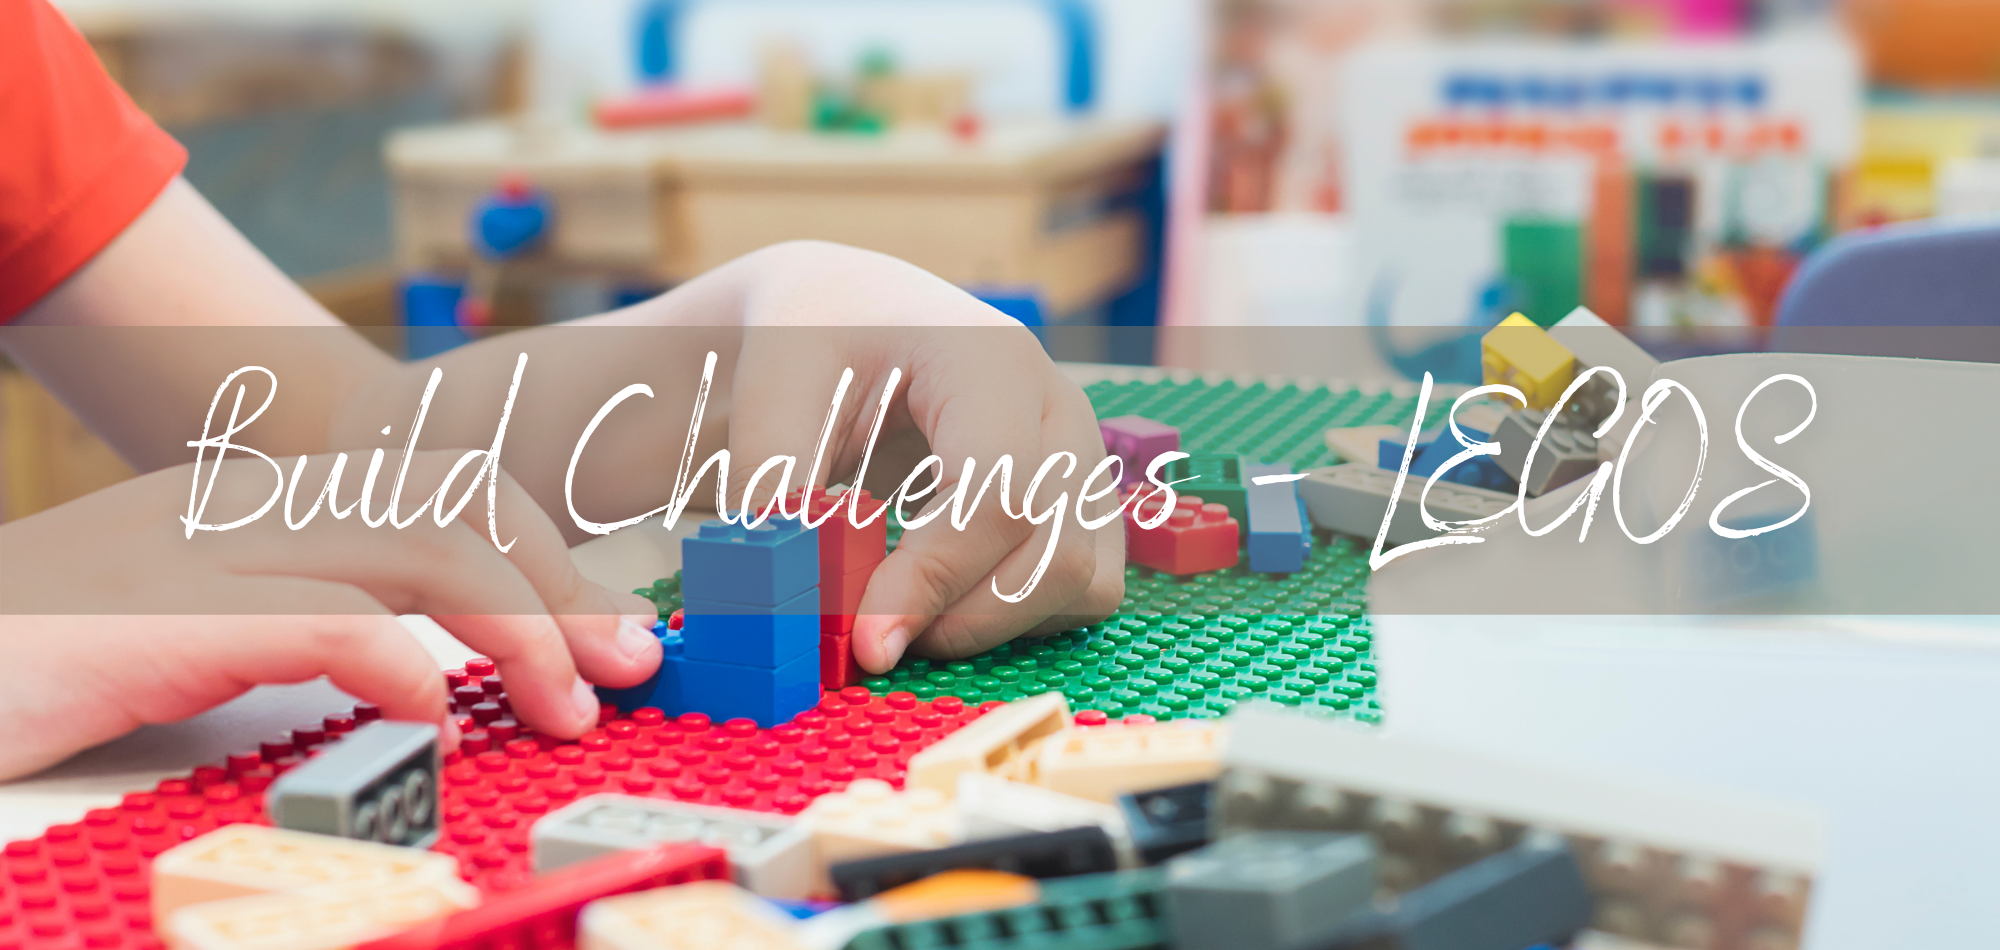 Build Challenges - Legos